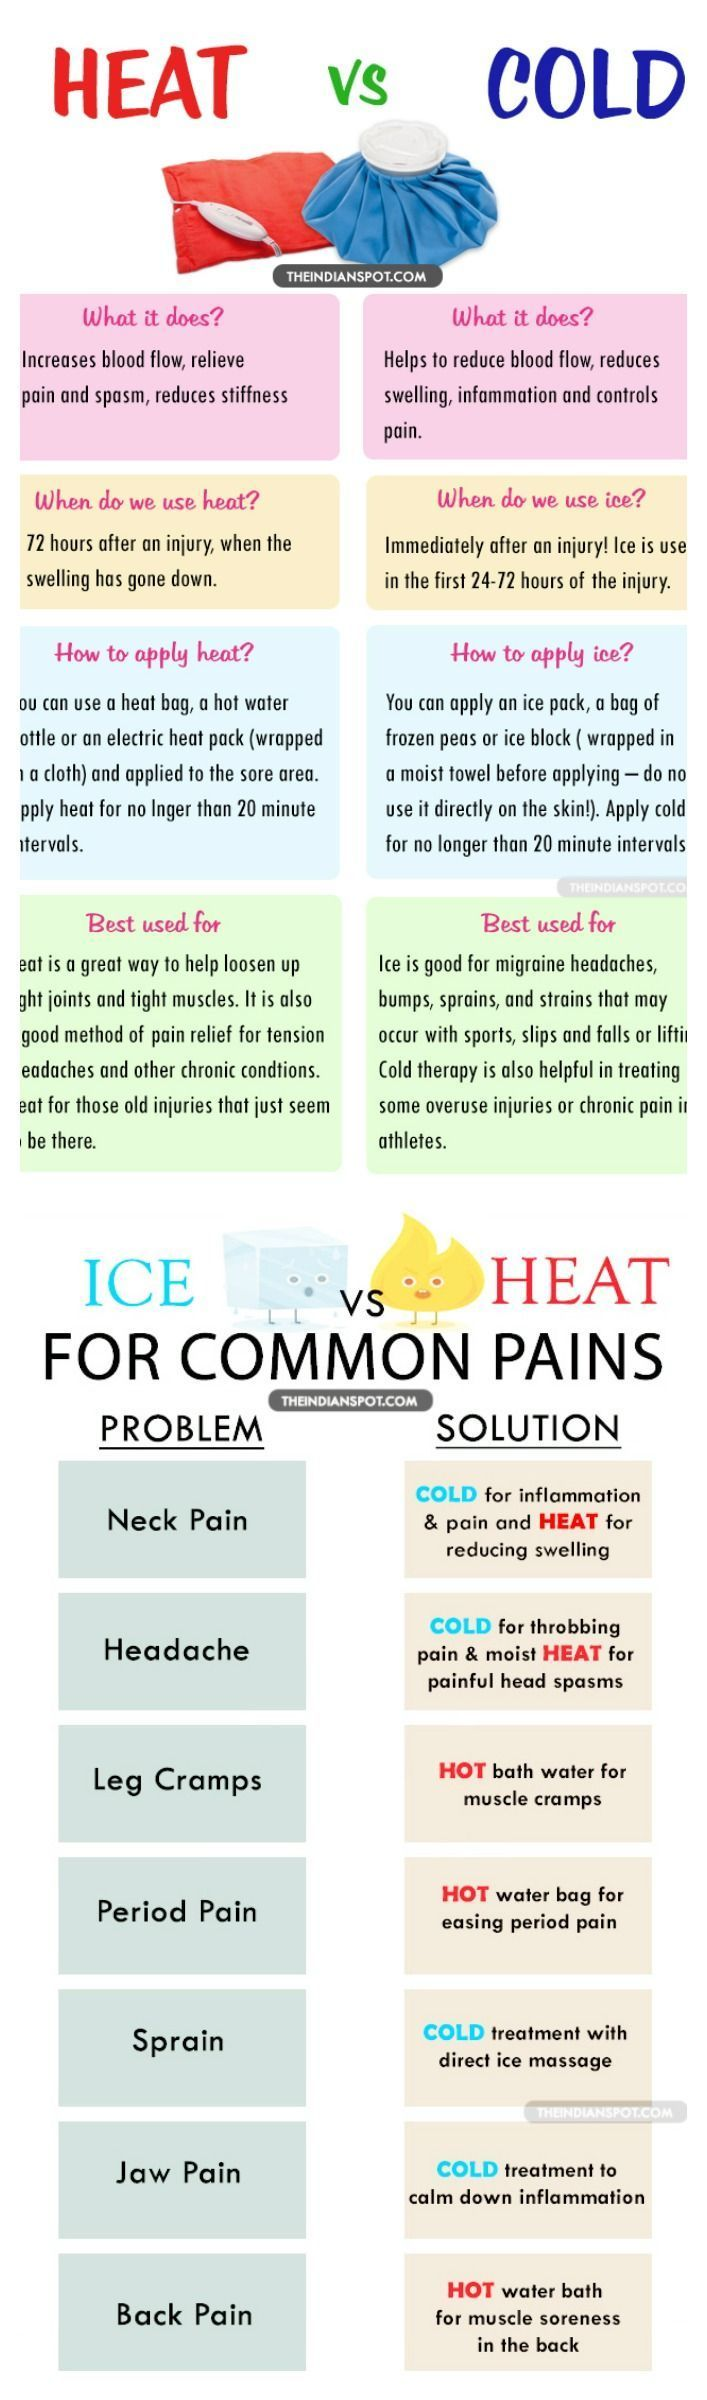 Pain Relief When to use ice/when to use heat on sore